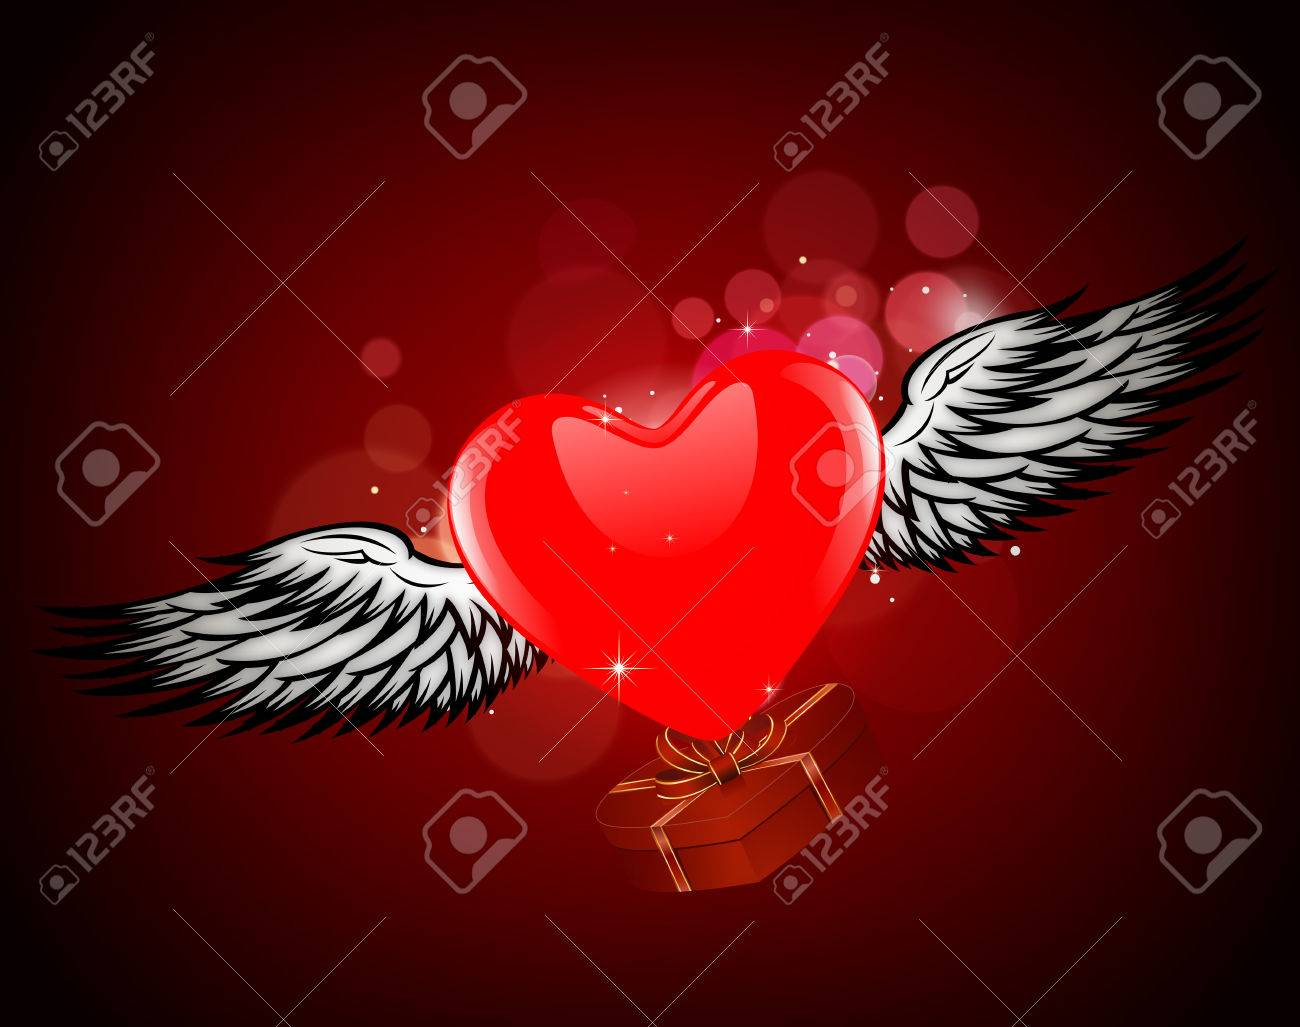 Heart With Wings Abstract Composition Valentines Day Abstract